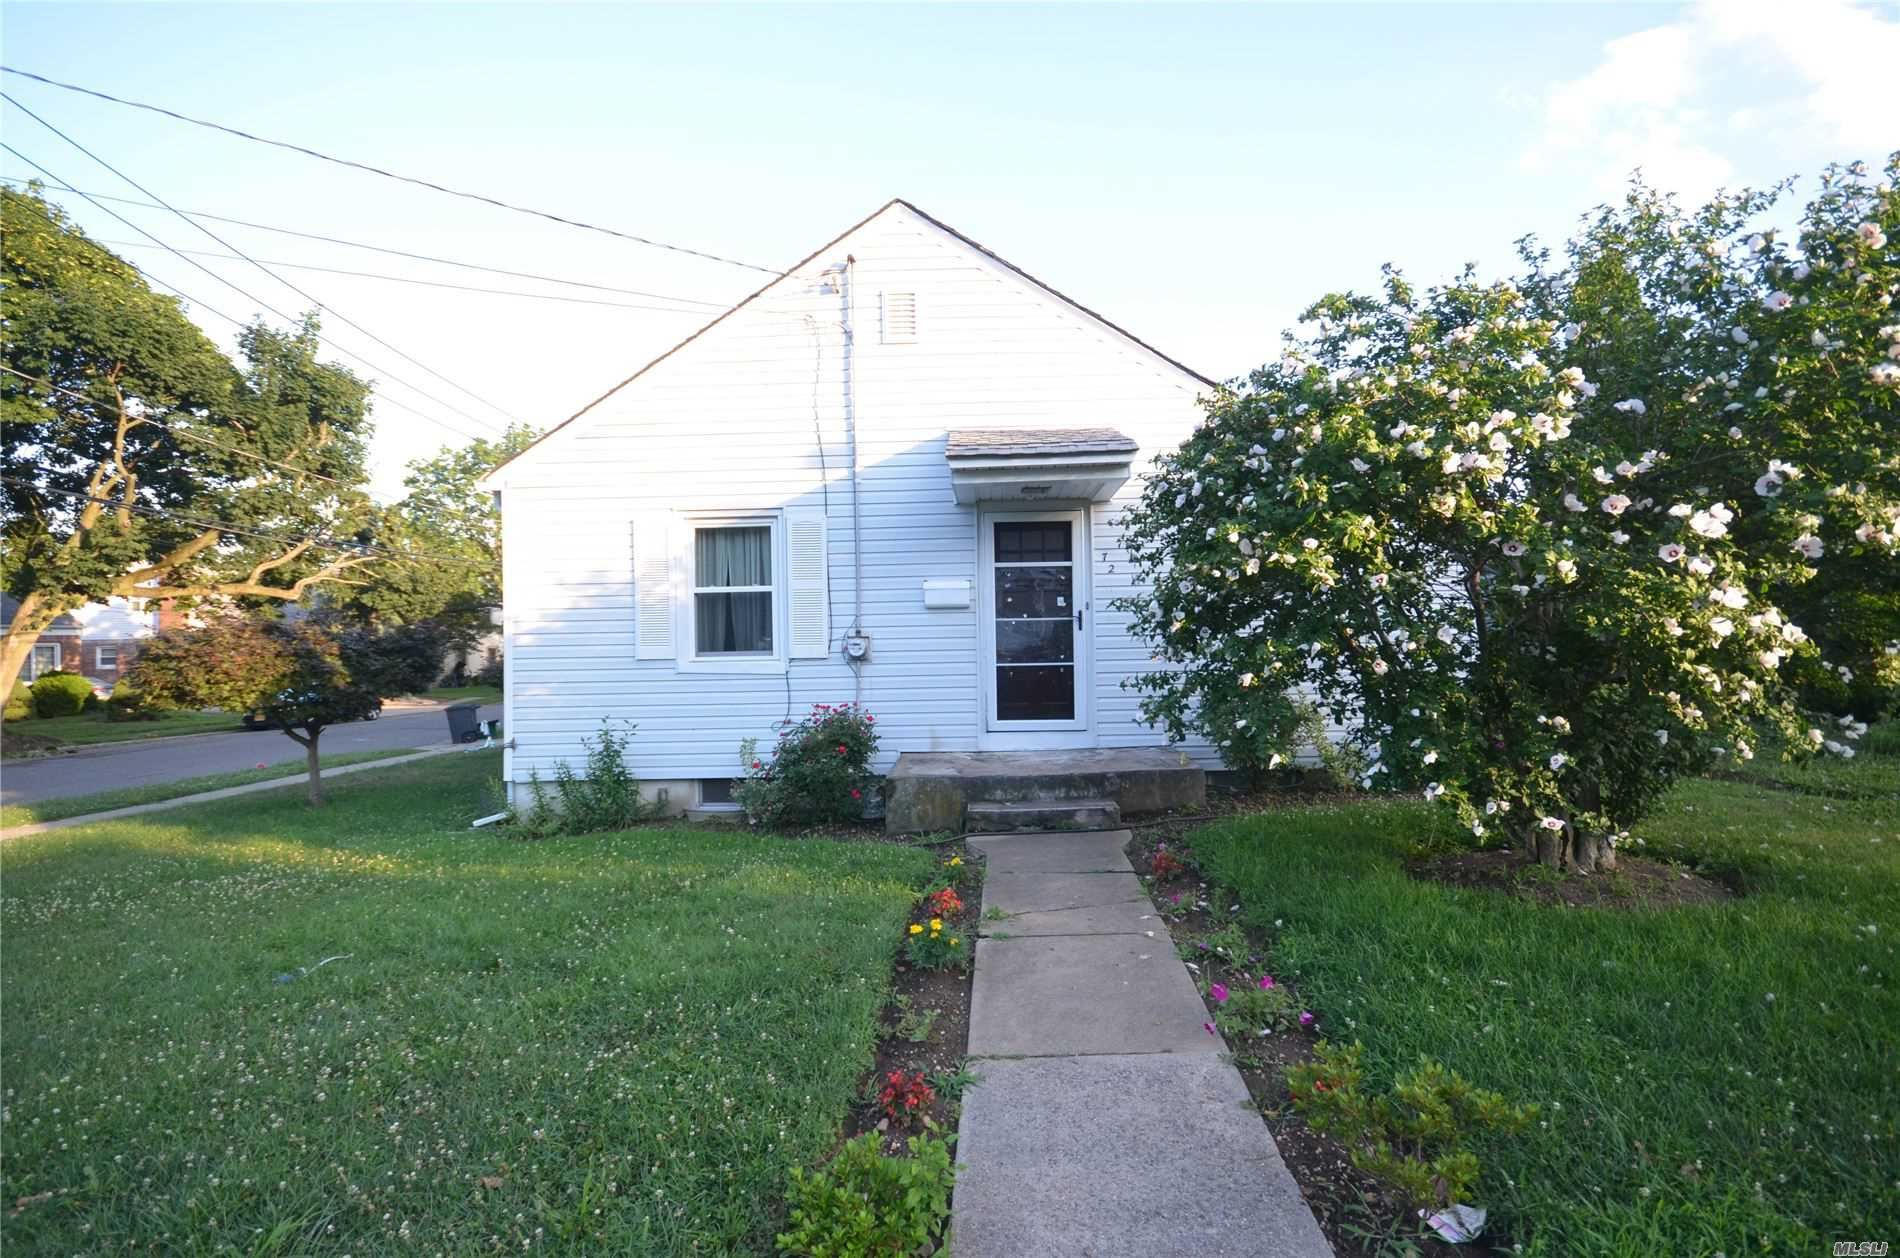 72 Woodward St, Roslyn Heights, NY 11577 - MLS#: 3226724